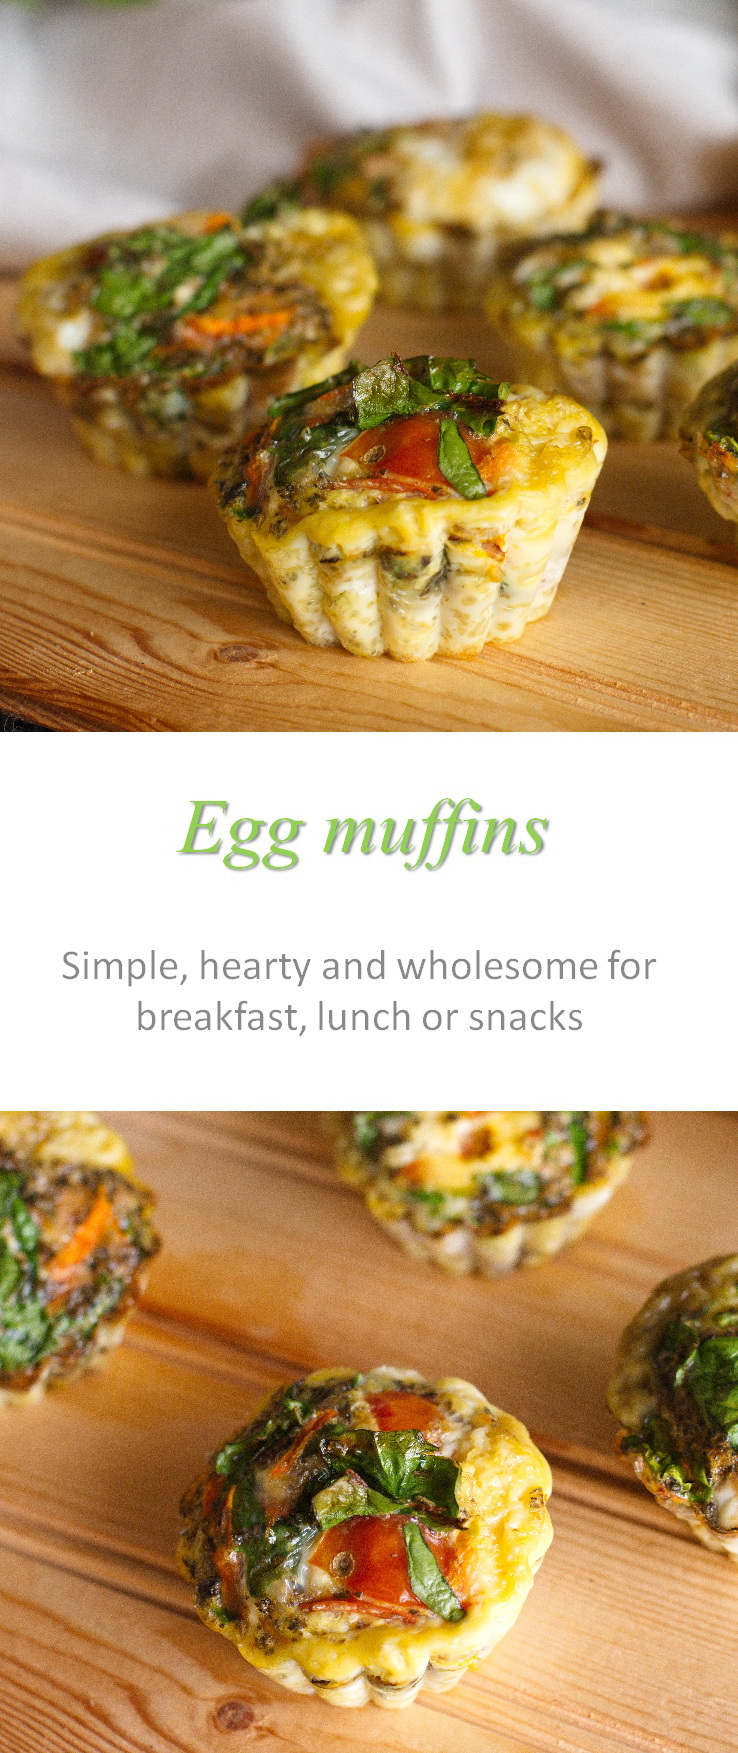 These egg muffins are really easy to make and can use whatever vegetables or other ingredients you have on hand. #eggmuffins